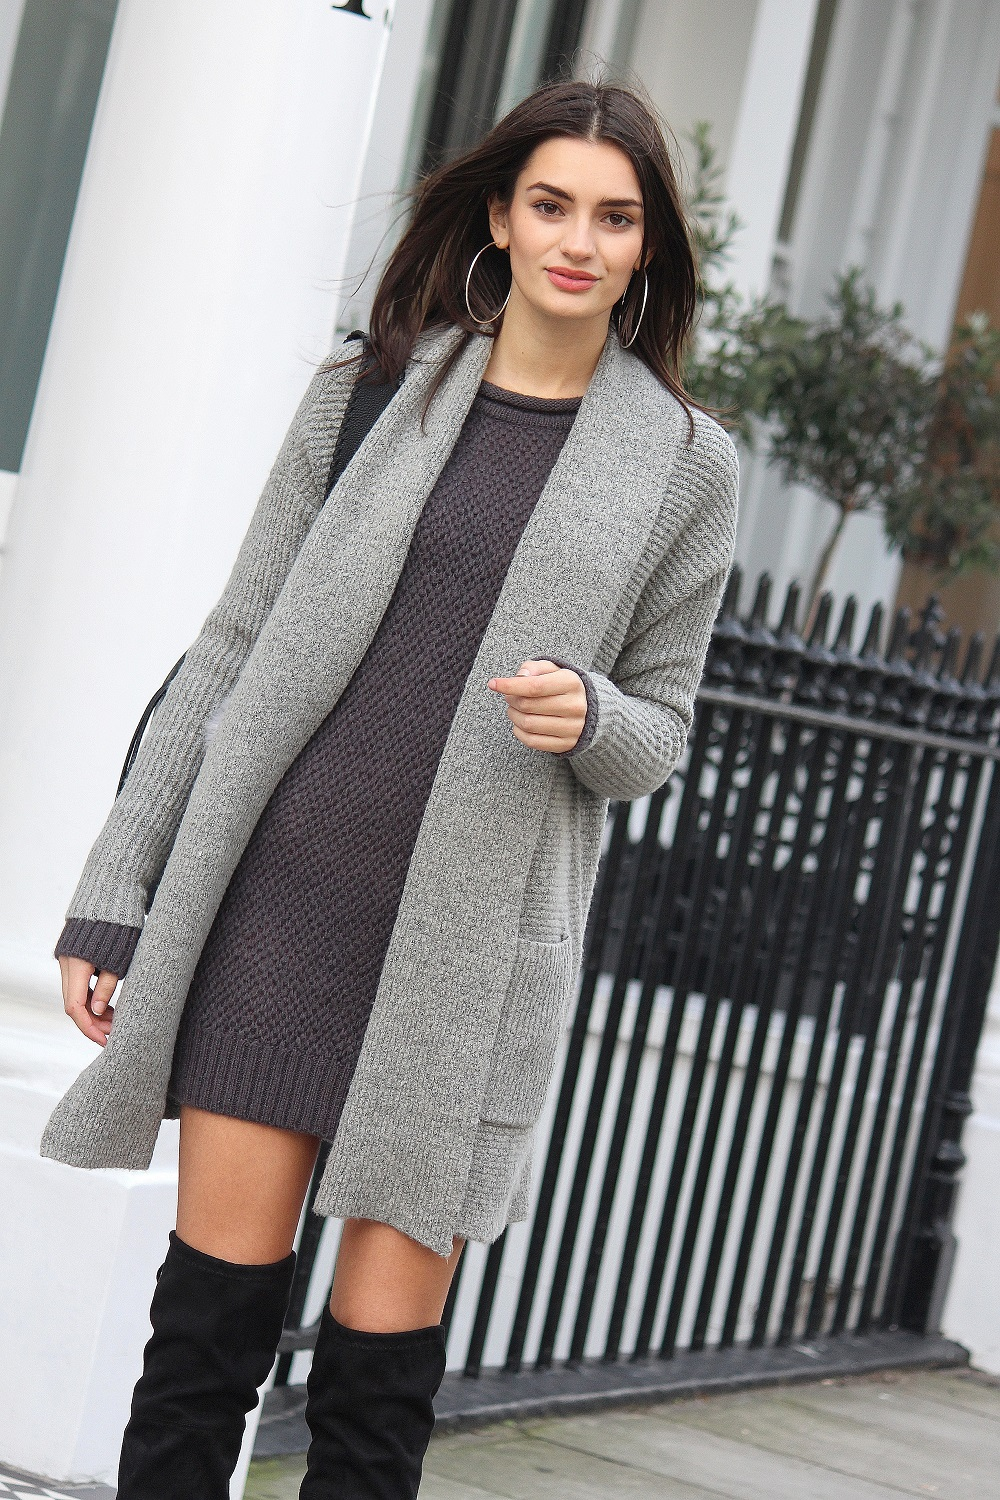 50 shades of grey layering worn by peexo fashion blogger